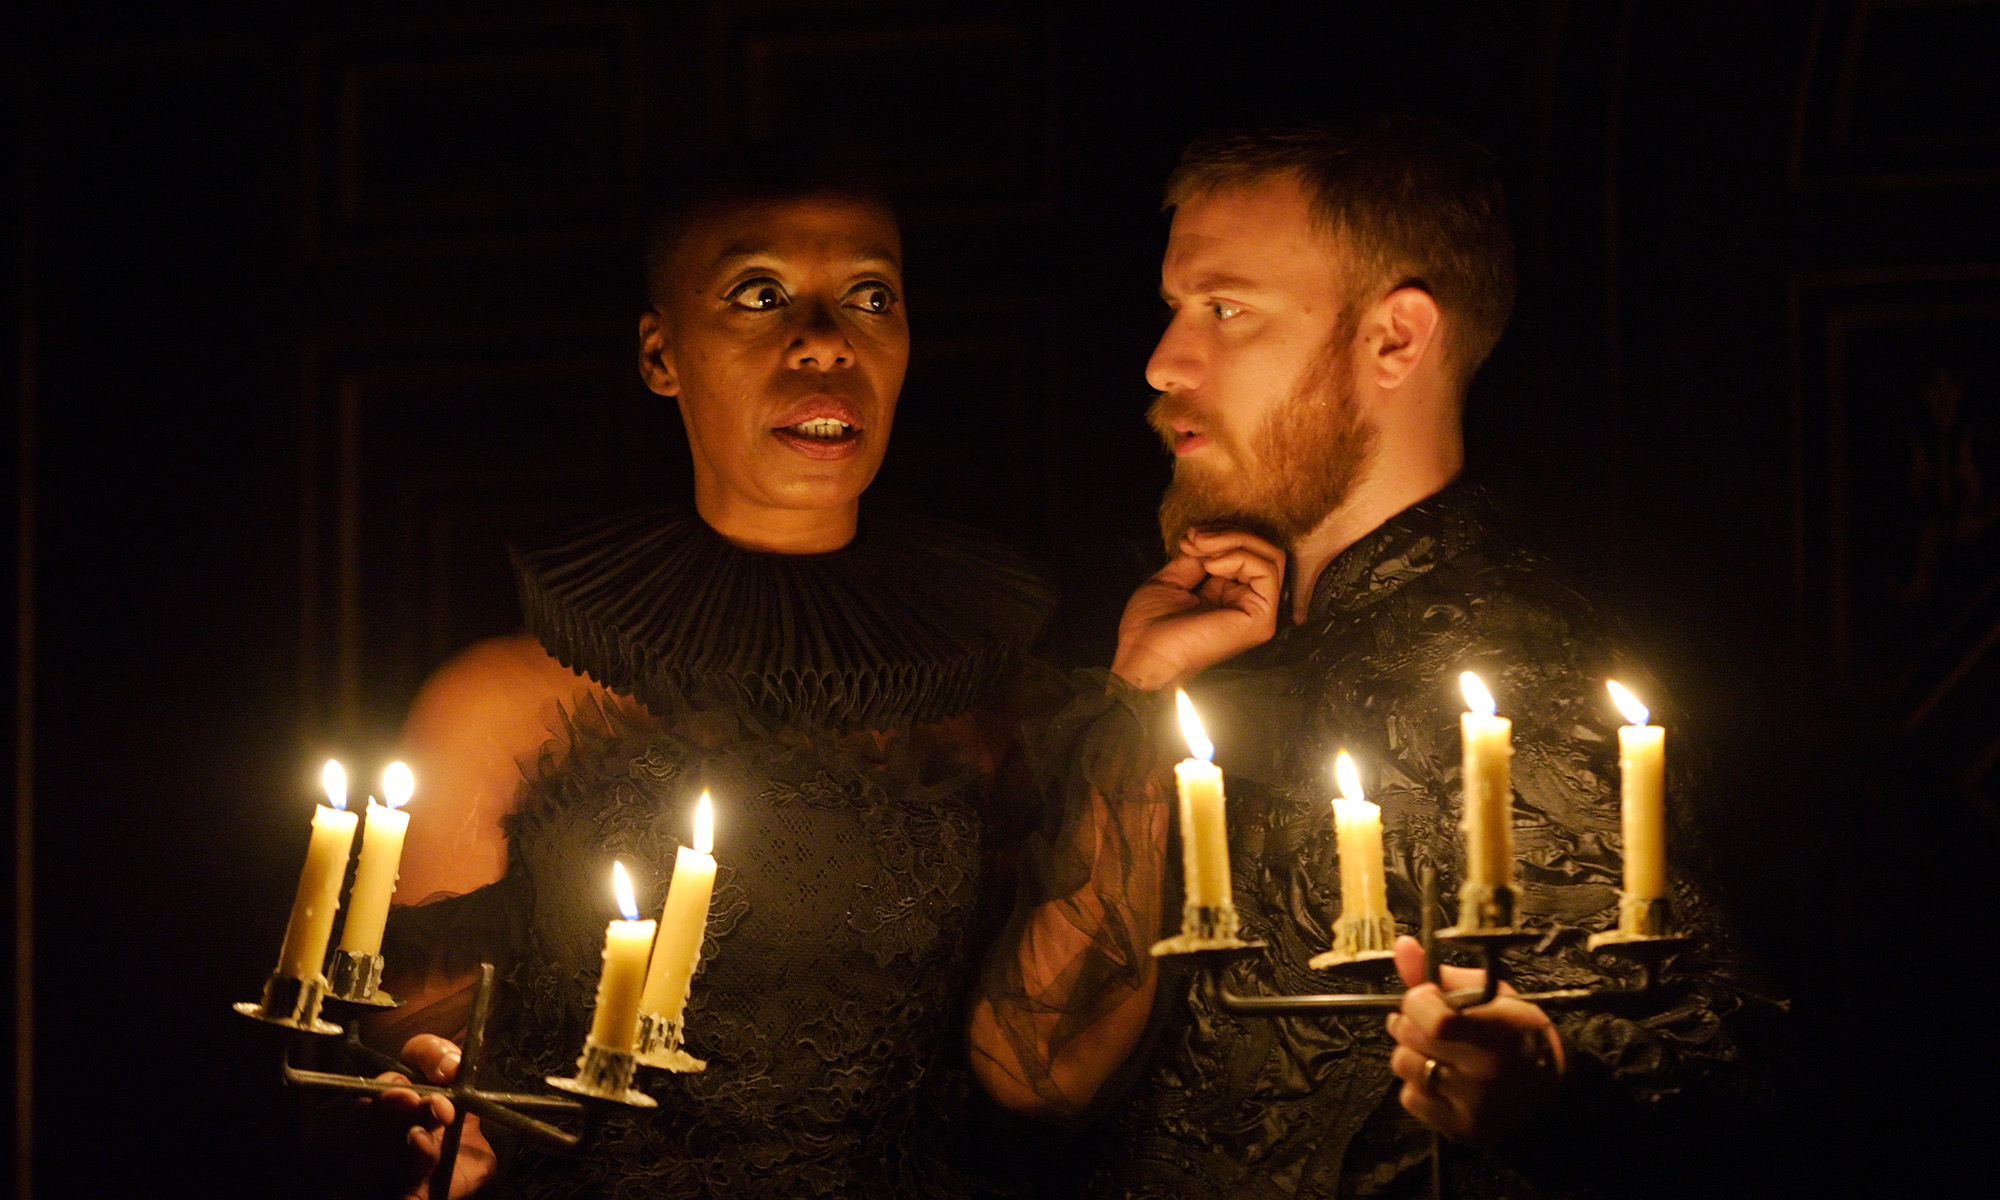 A woman and man stand in the glow of candlelight, the woman's hand touching the man's chin.